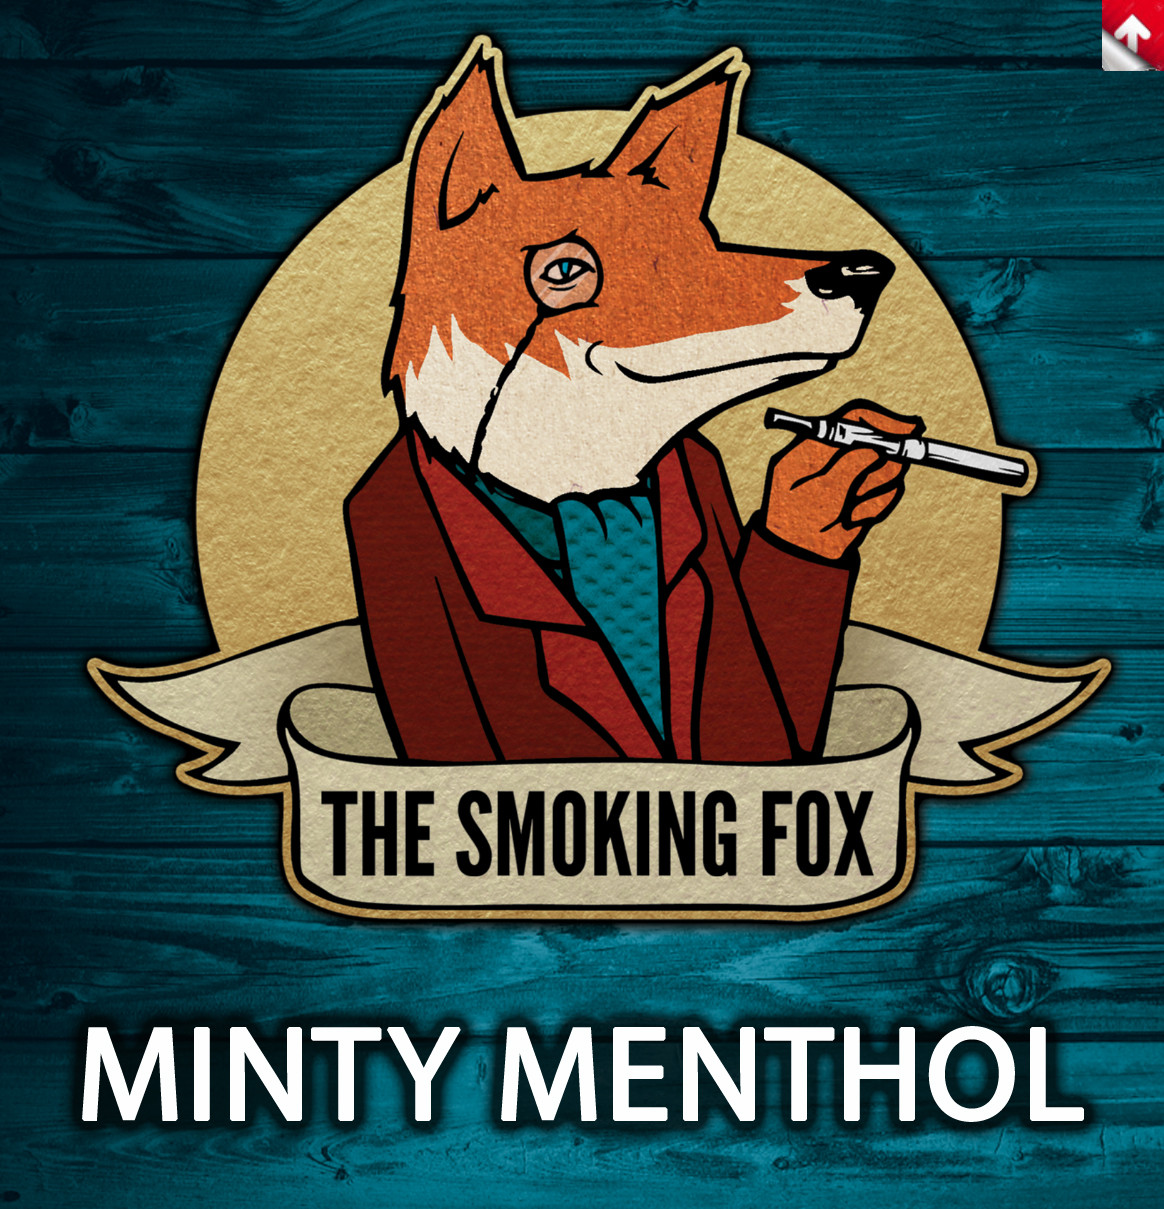 SMOKING FOX 10ml - MINTY MENTHOL